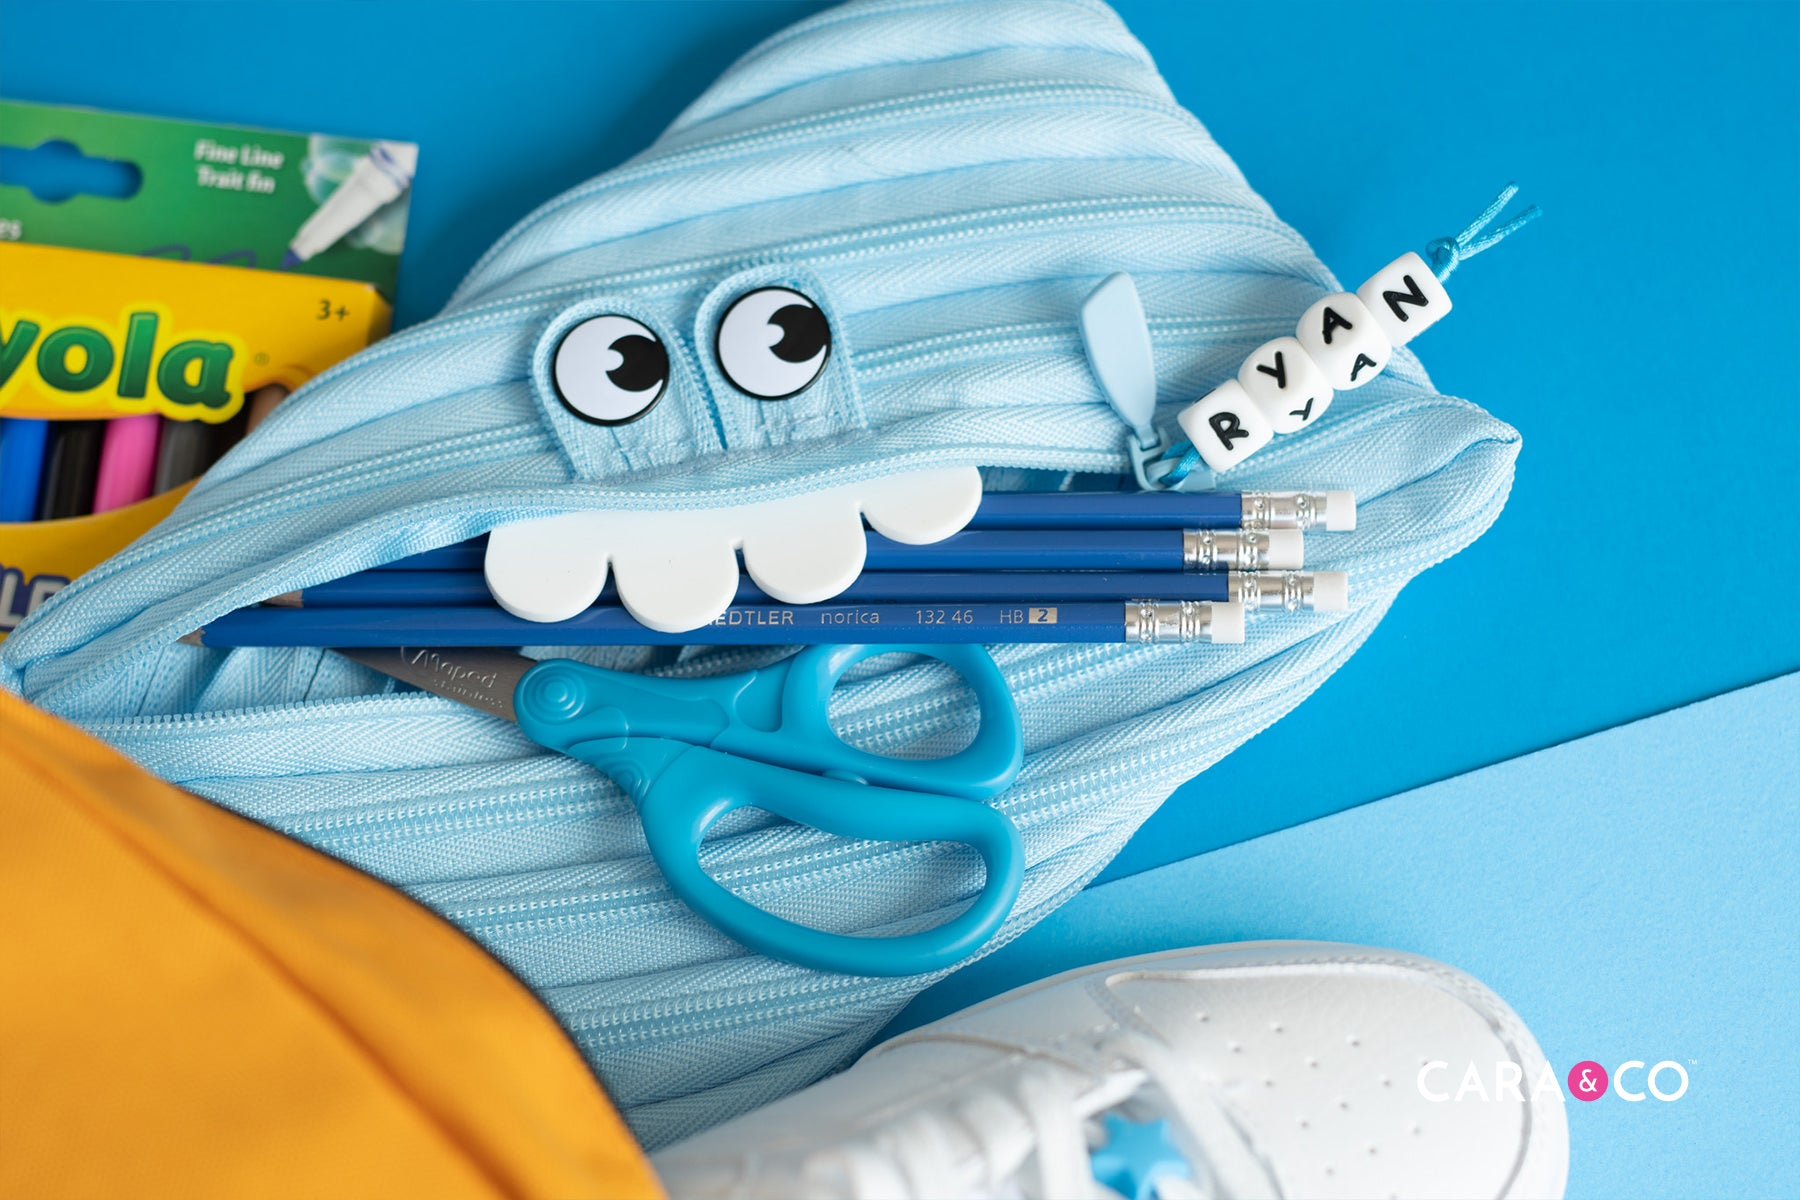 Back to school in style - Fun ideas for labelling your school supplies!